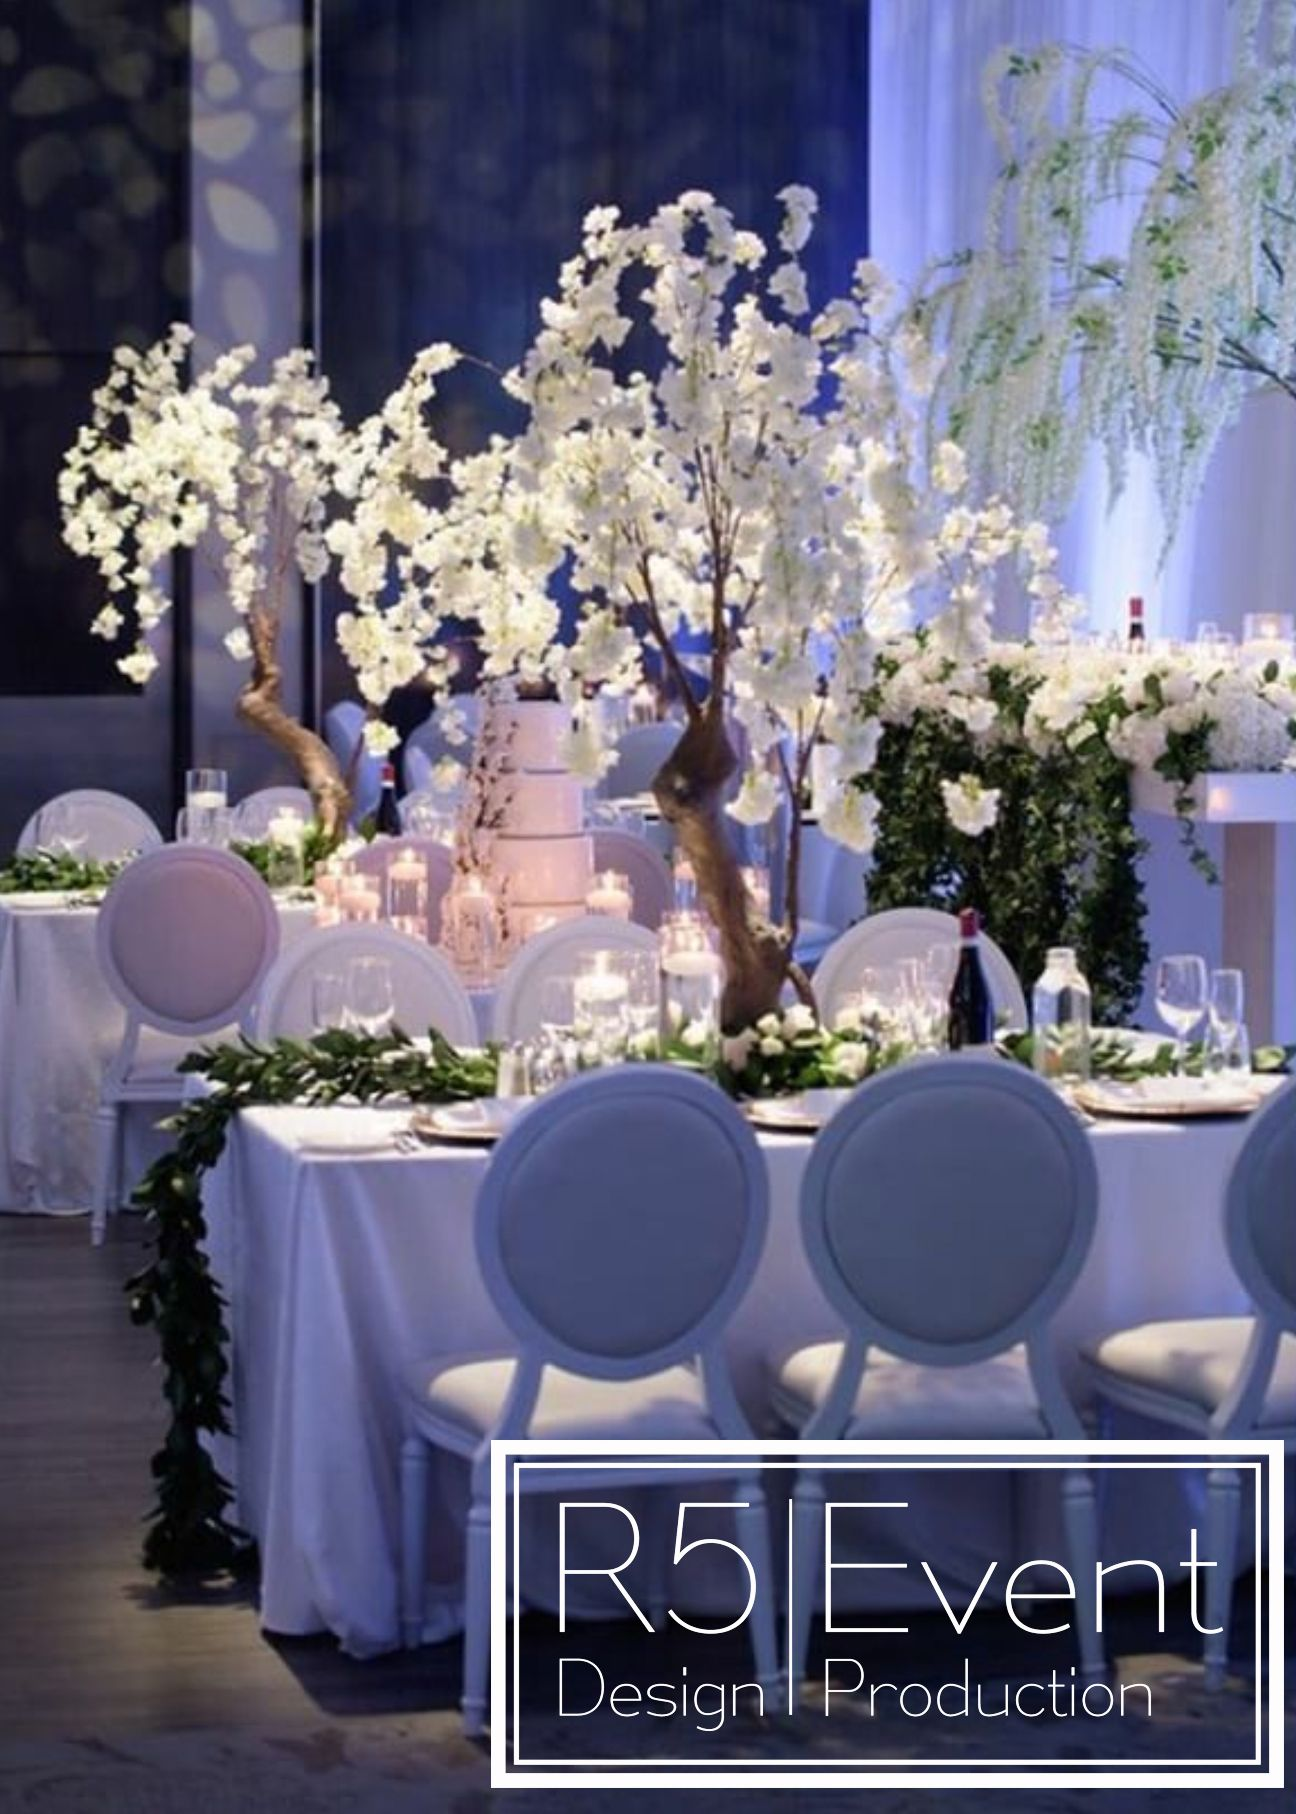 Stunning White Cherry Blossom Trees Greenery And Fresh Roses Full Service Wedding Decor By R5 E Wedding Decorations Event Design Corporate Events Decoration